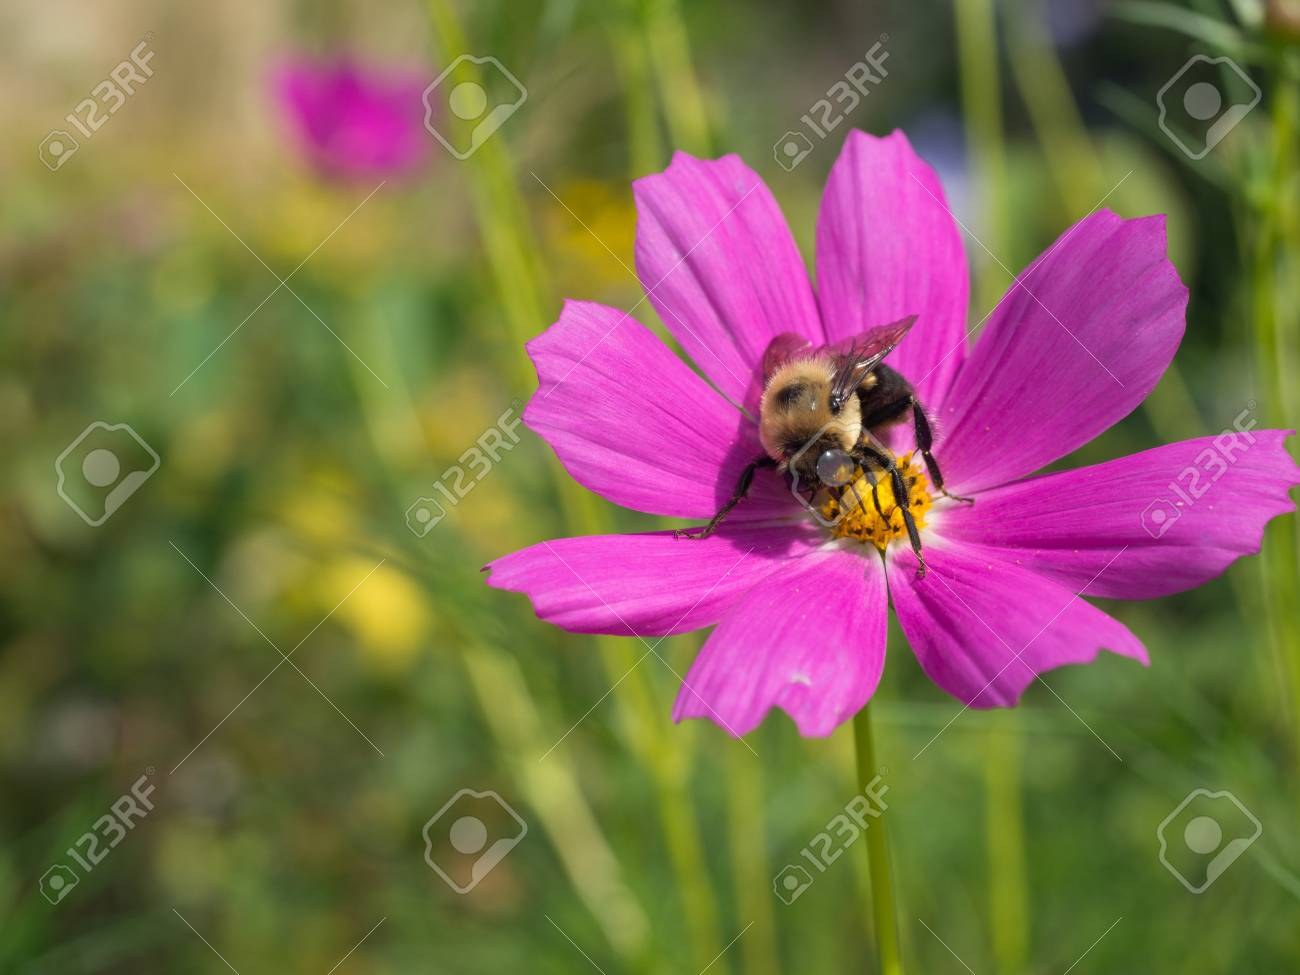 Pink cosmo flower with bumble bee at wave hill garden stock photo pink cosmo flower with bumble bee at wave hill garden stock photo 97151343 mightylinksfo